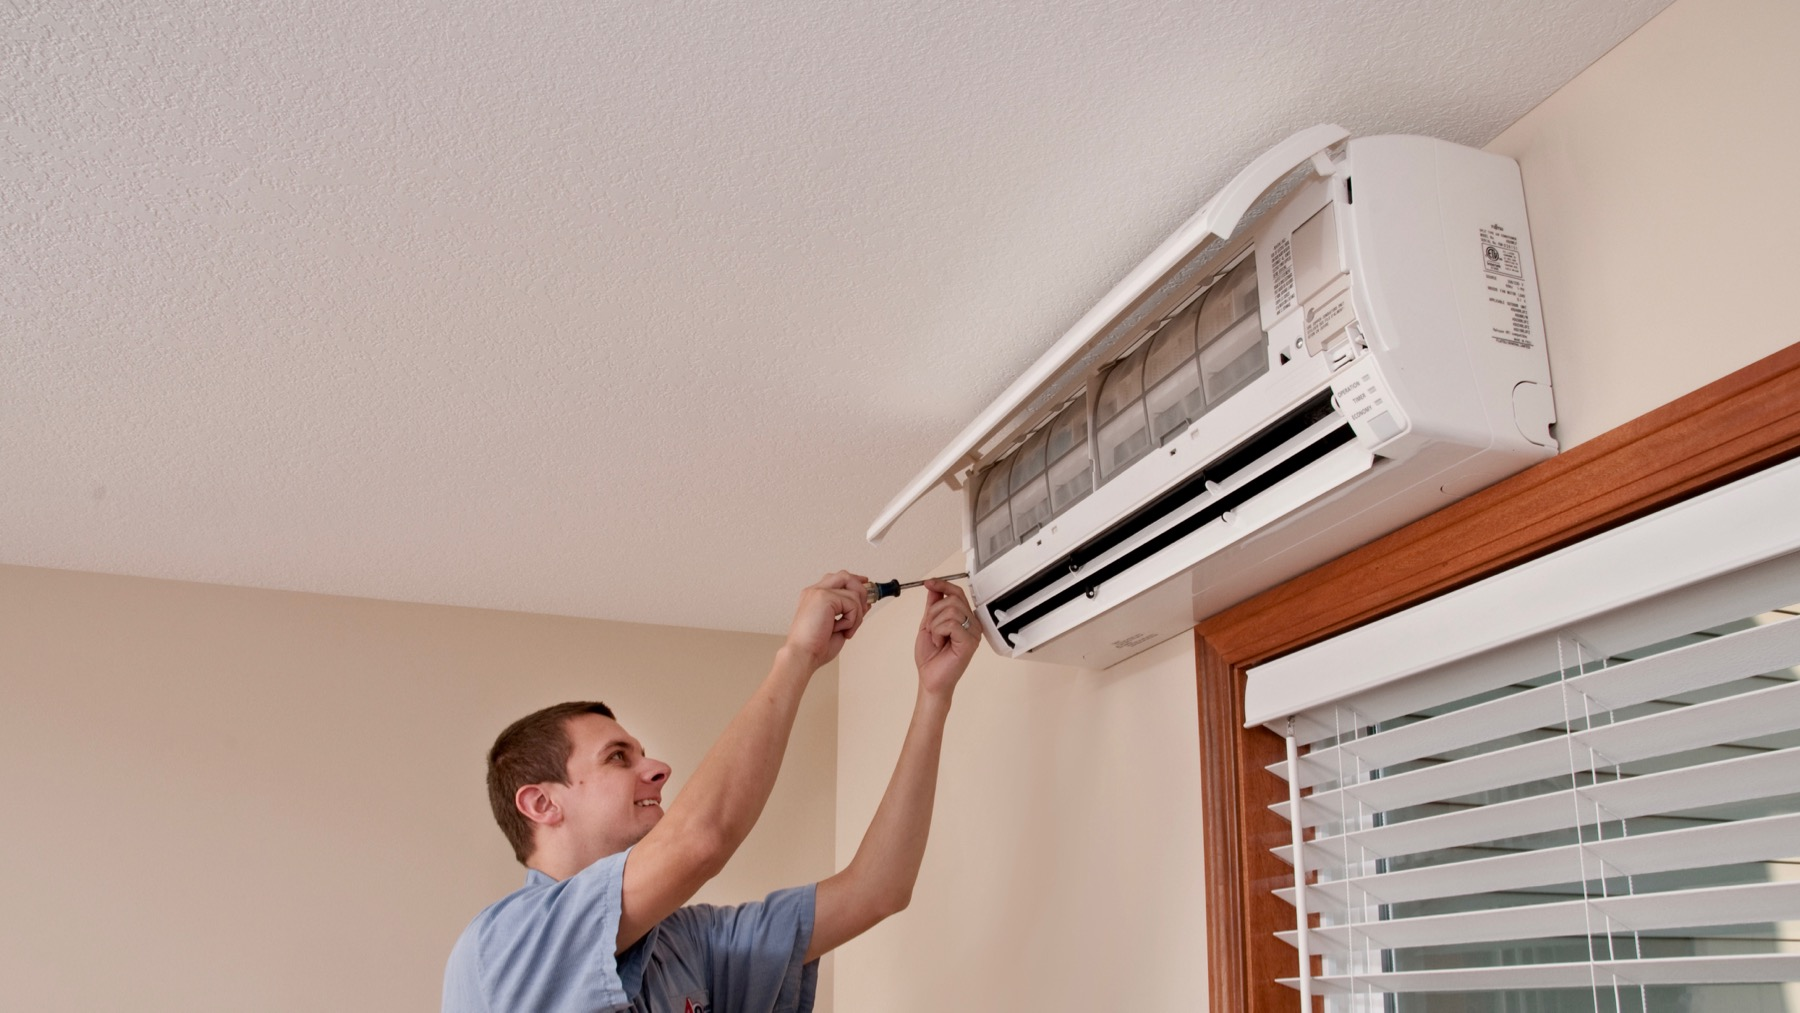 Shop Heating mini split ductless air conditioner